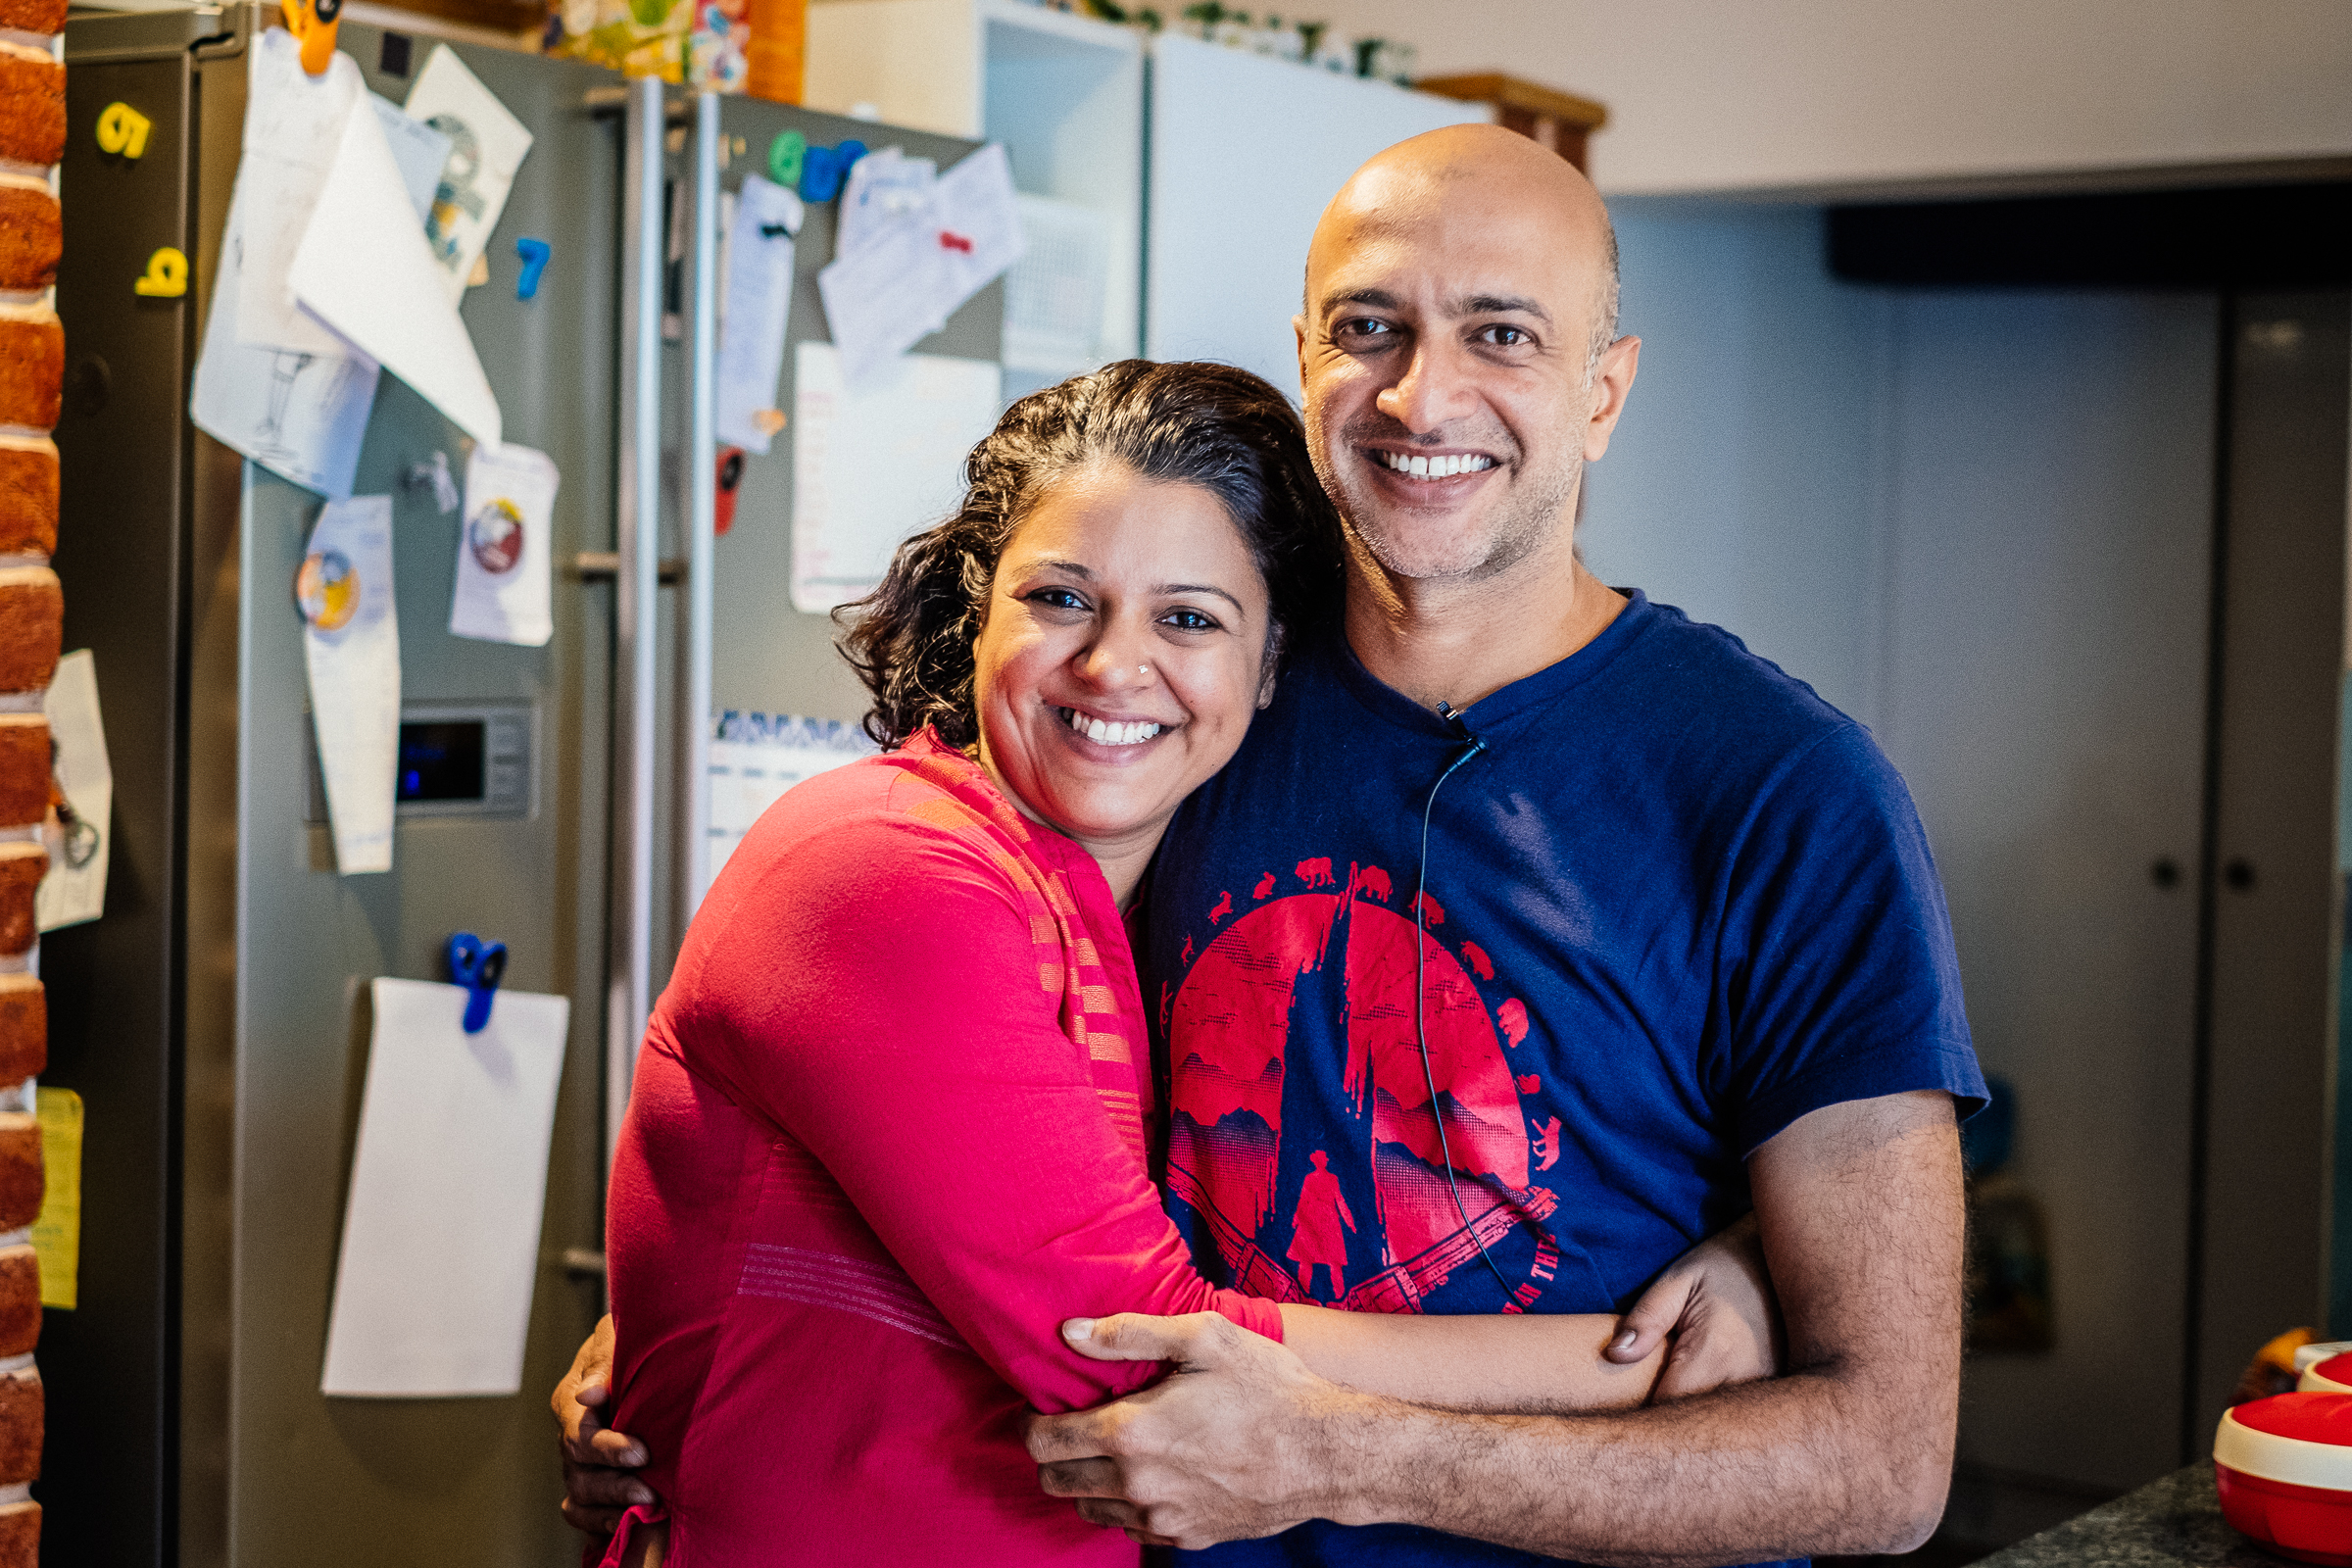 Key highlights from our interview with Jaga and Reshma, upper middle class patient profiles with a busy family life.